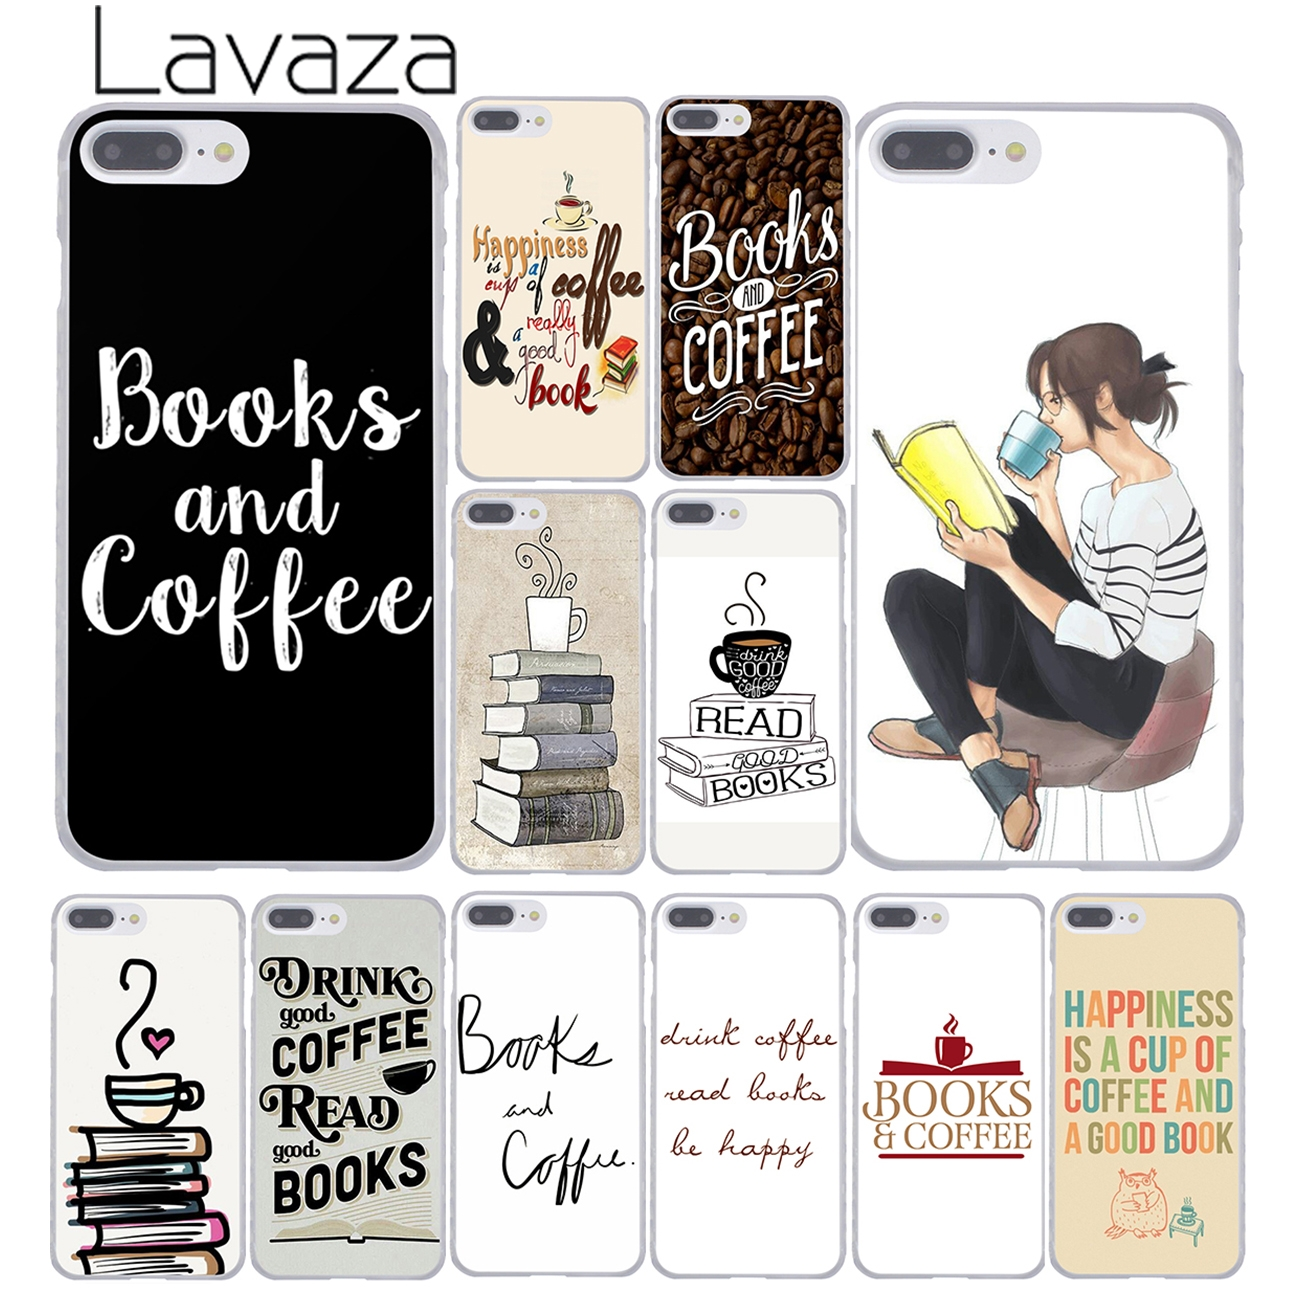 Lavaza Books And Coffee Inverted Mck Print Hard Coque Shell Phone Case for Apple iPhone 8 7 6 6S Plus X 10 5 5S SE 5C 4 4S